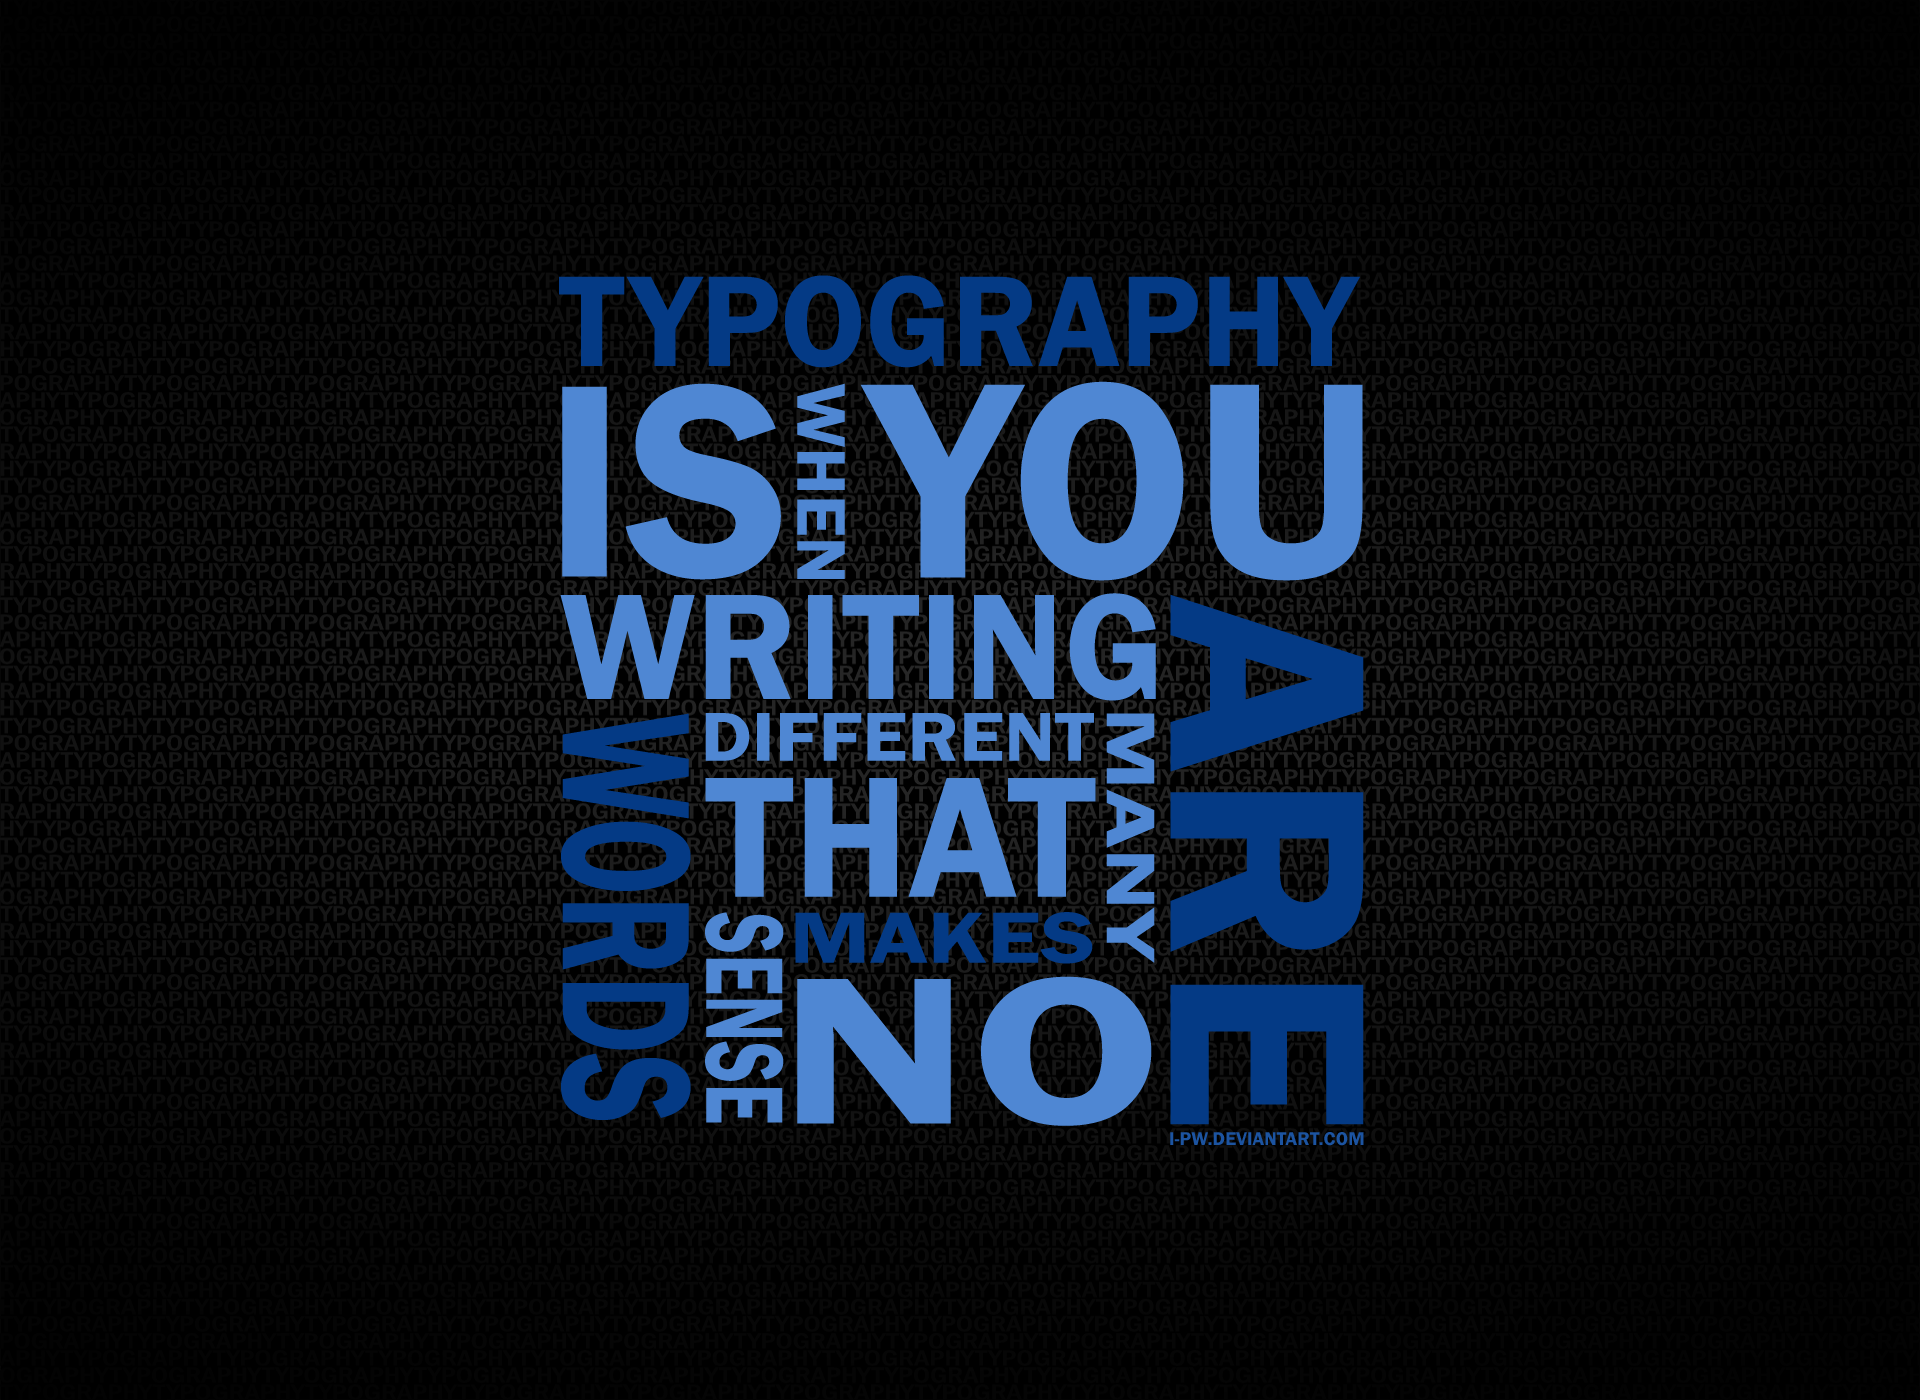 Typography WORD by wellgraphic on DeviantArt